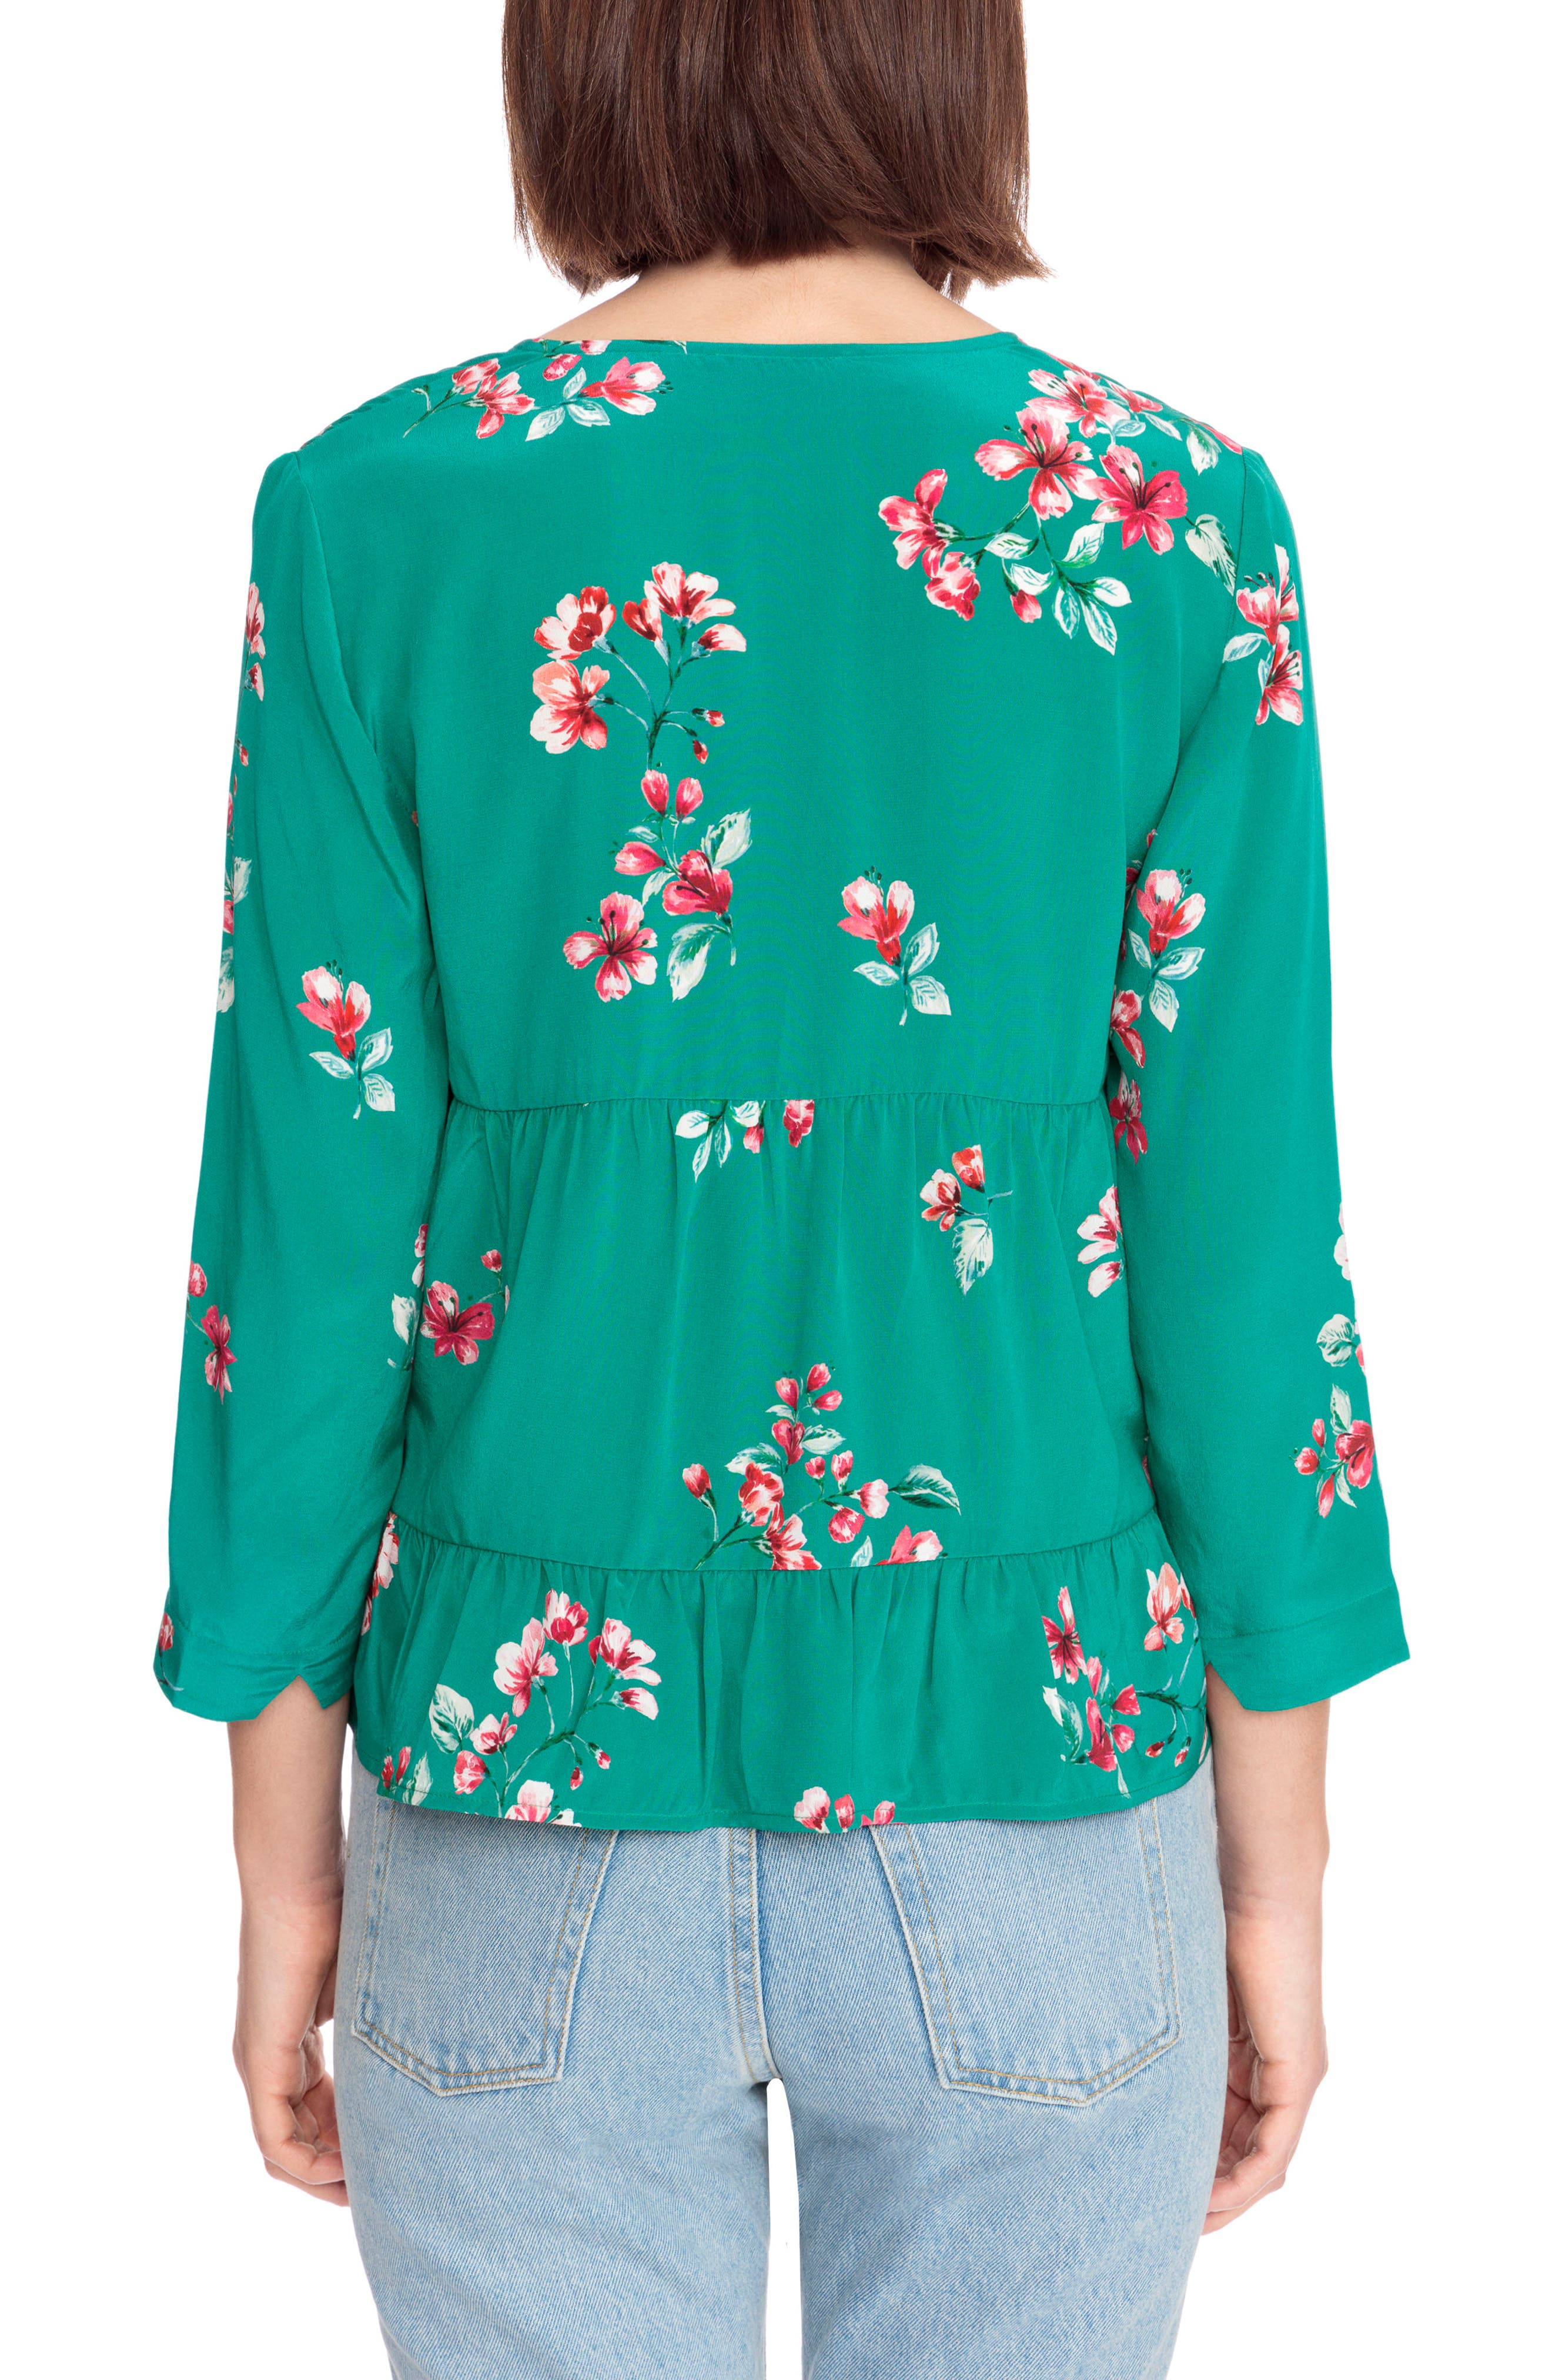 Anna Floral Silk Blouse,                             Alternate thumbnail 3, color,                             Bouquet Print On Green